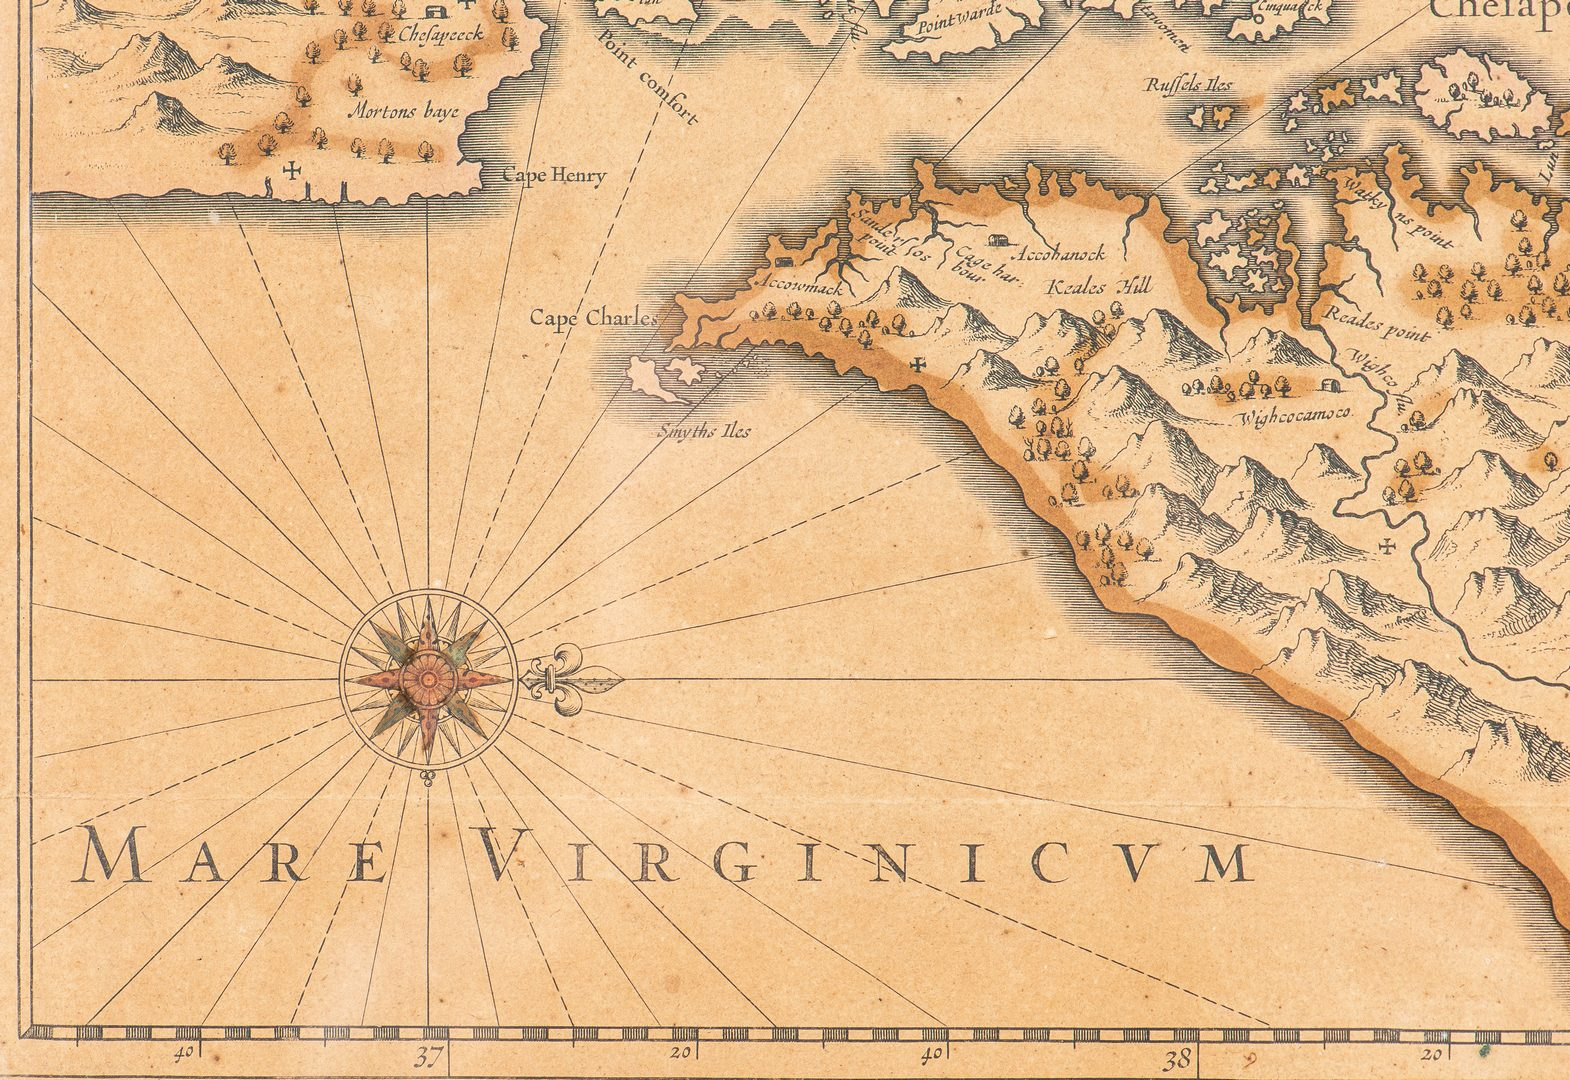 Lot 275: Hondius Map of VA – Nova Virginiae Tabula,